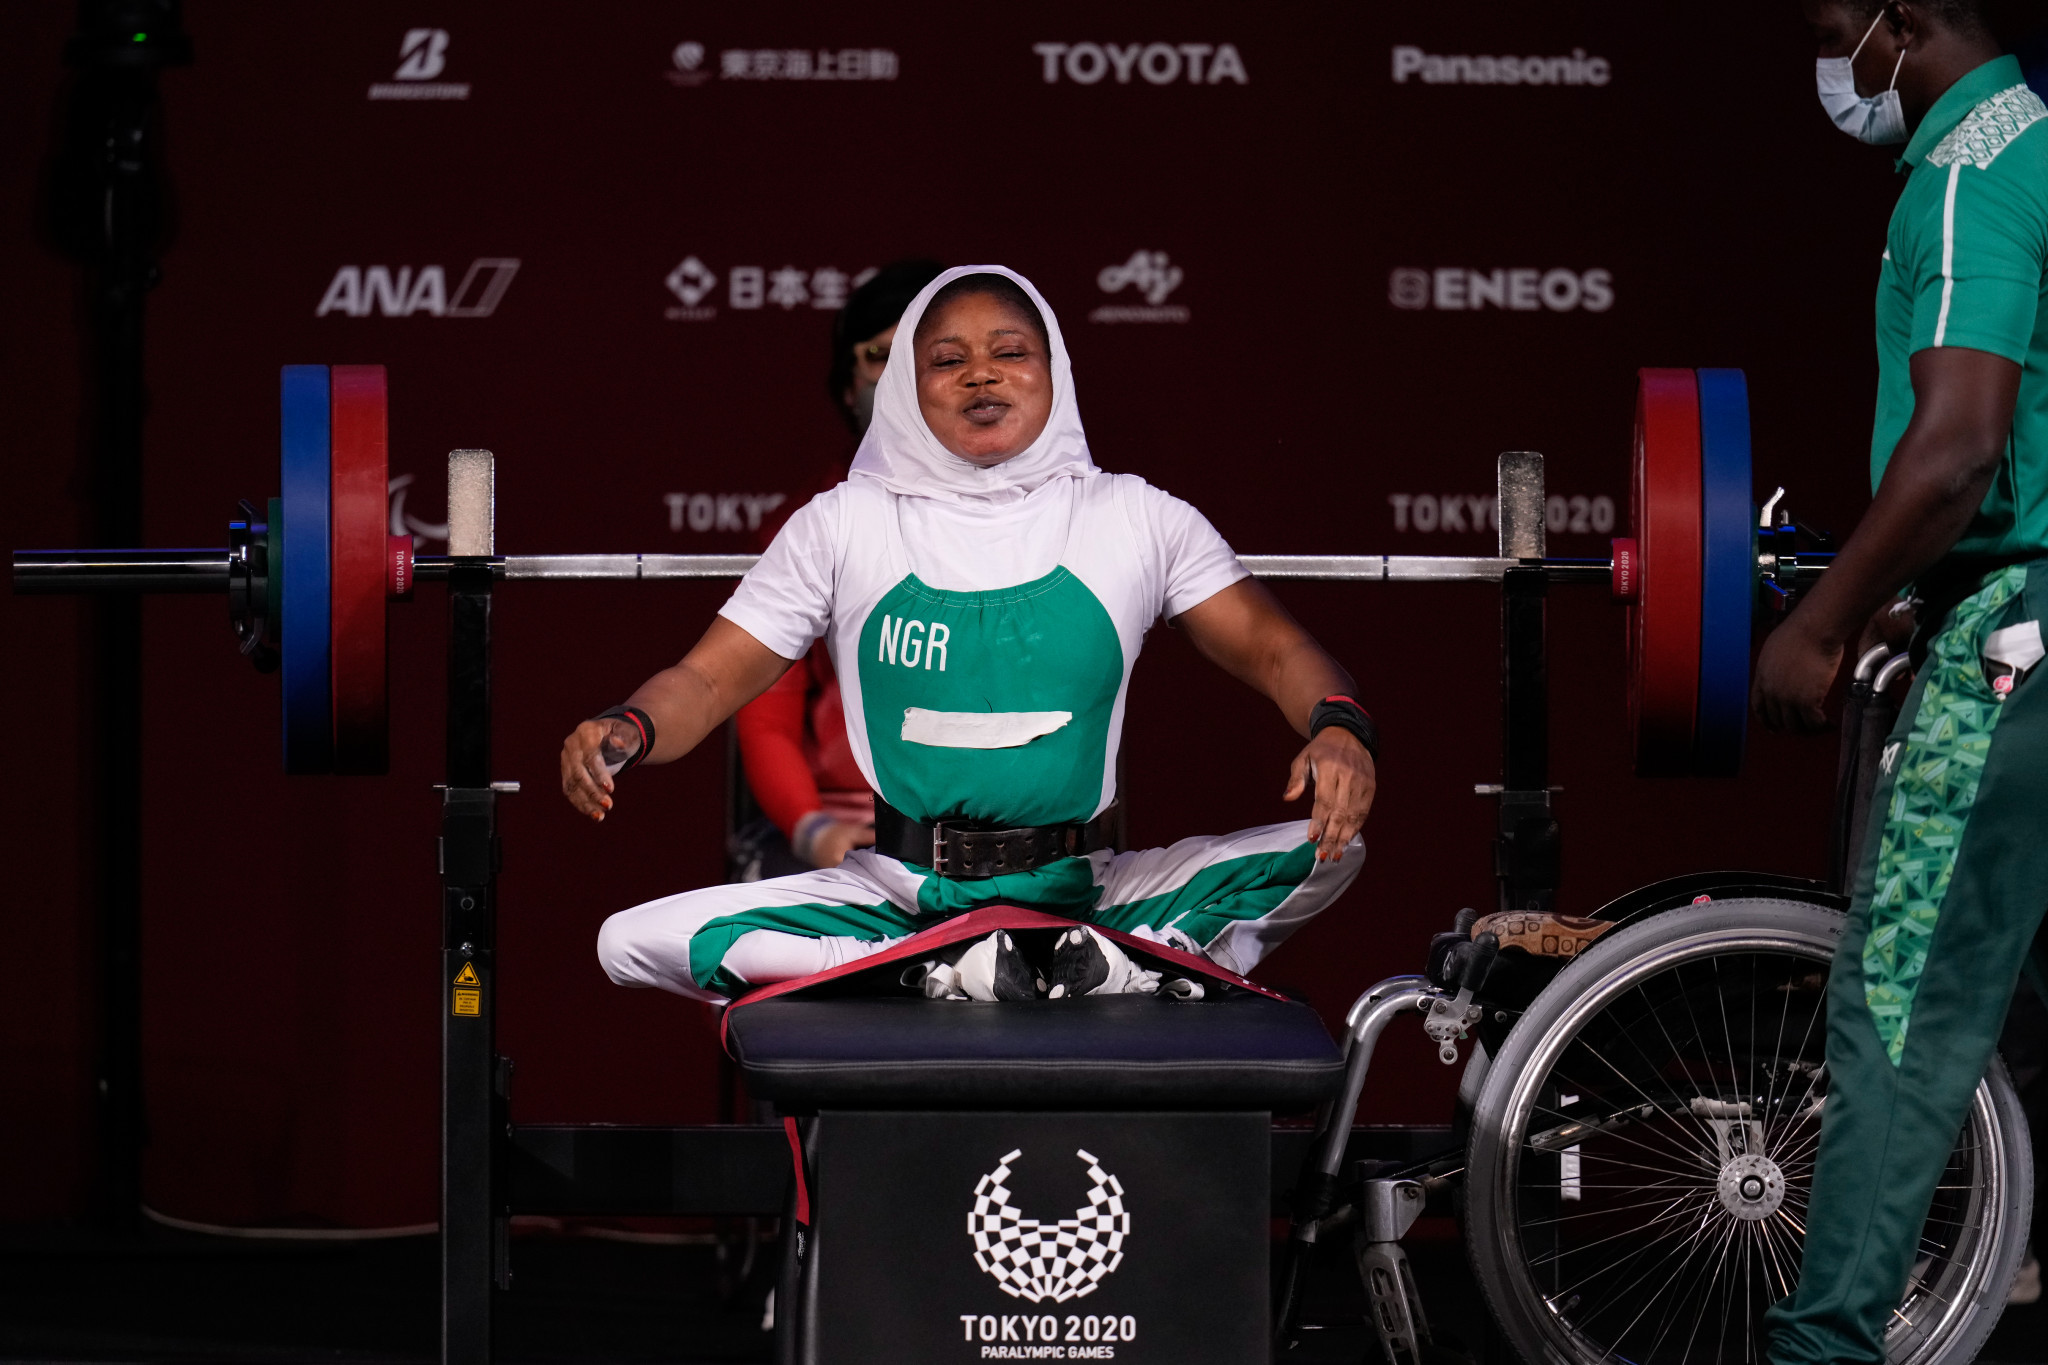 Nigeria claims first gold at Tokyo 2020 Paralympics as Guo breaks powerlifting world record